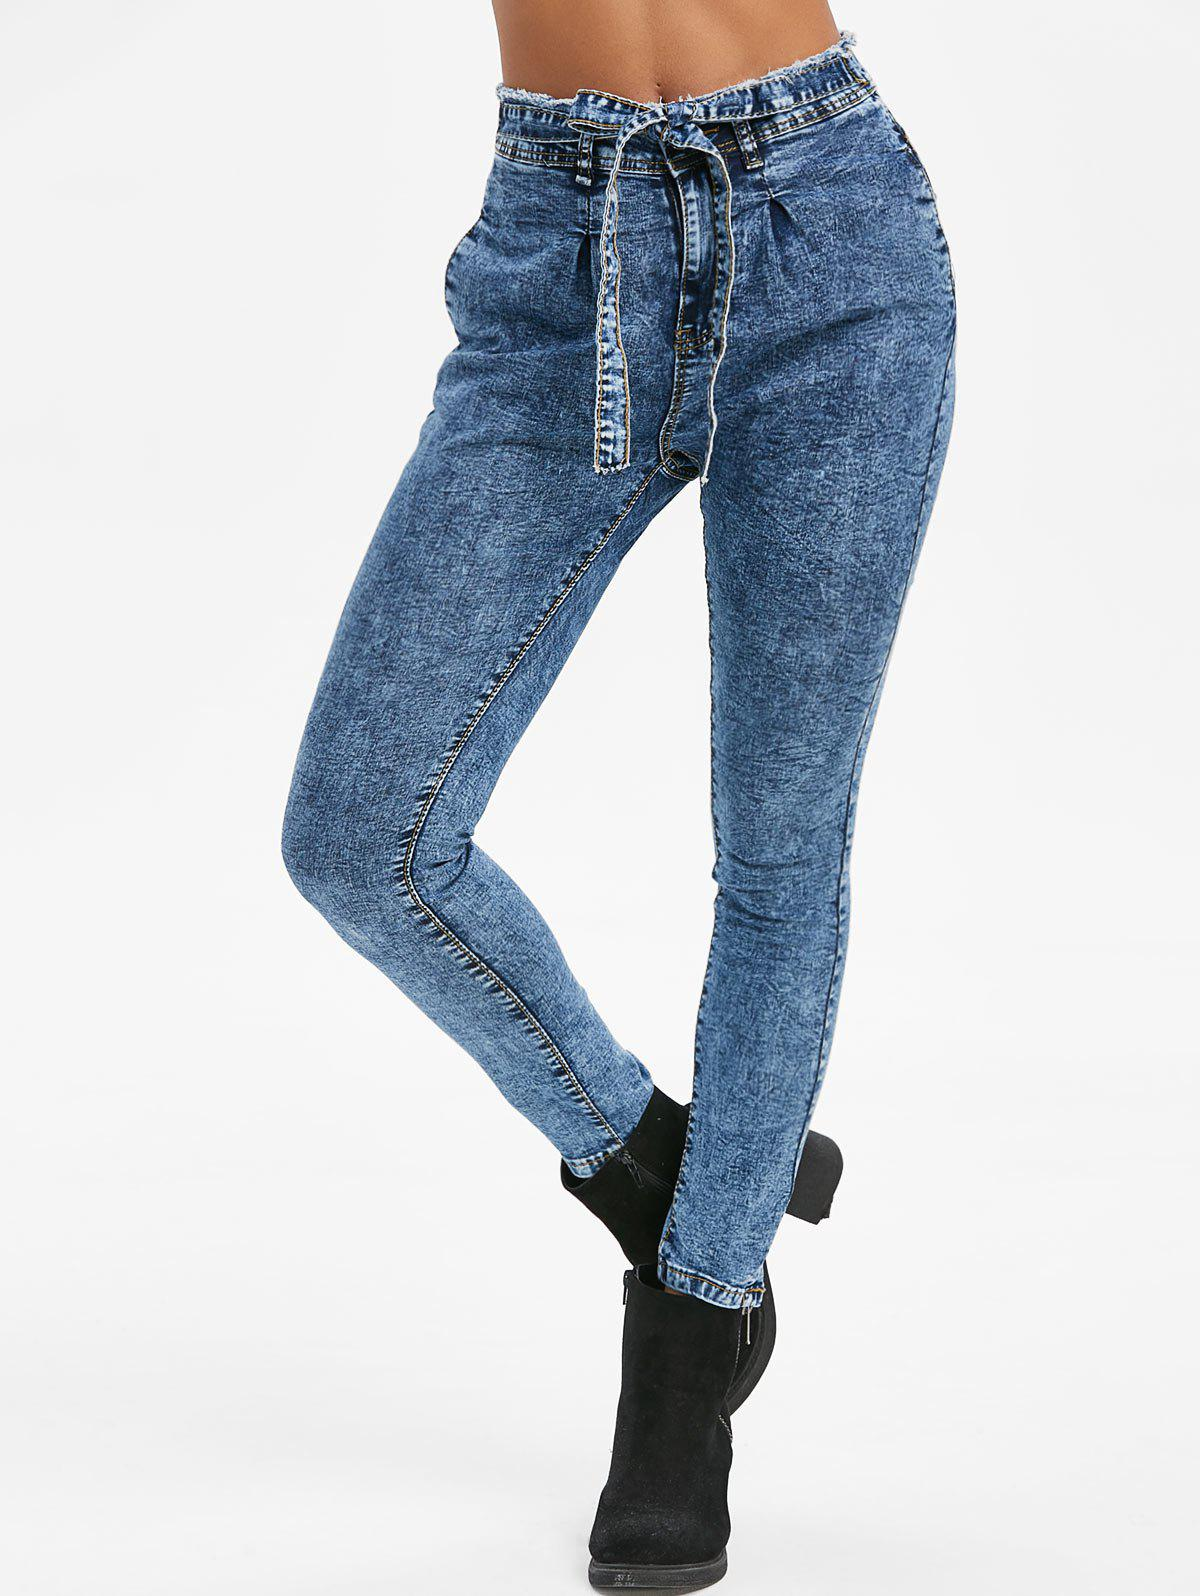 Knotted Frayed Snow Wash Skinny Jeans - CORNFLOWER BLUE L